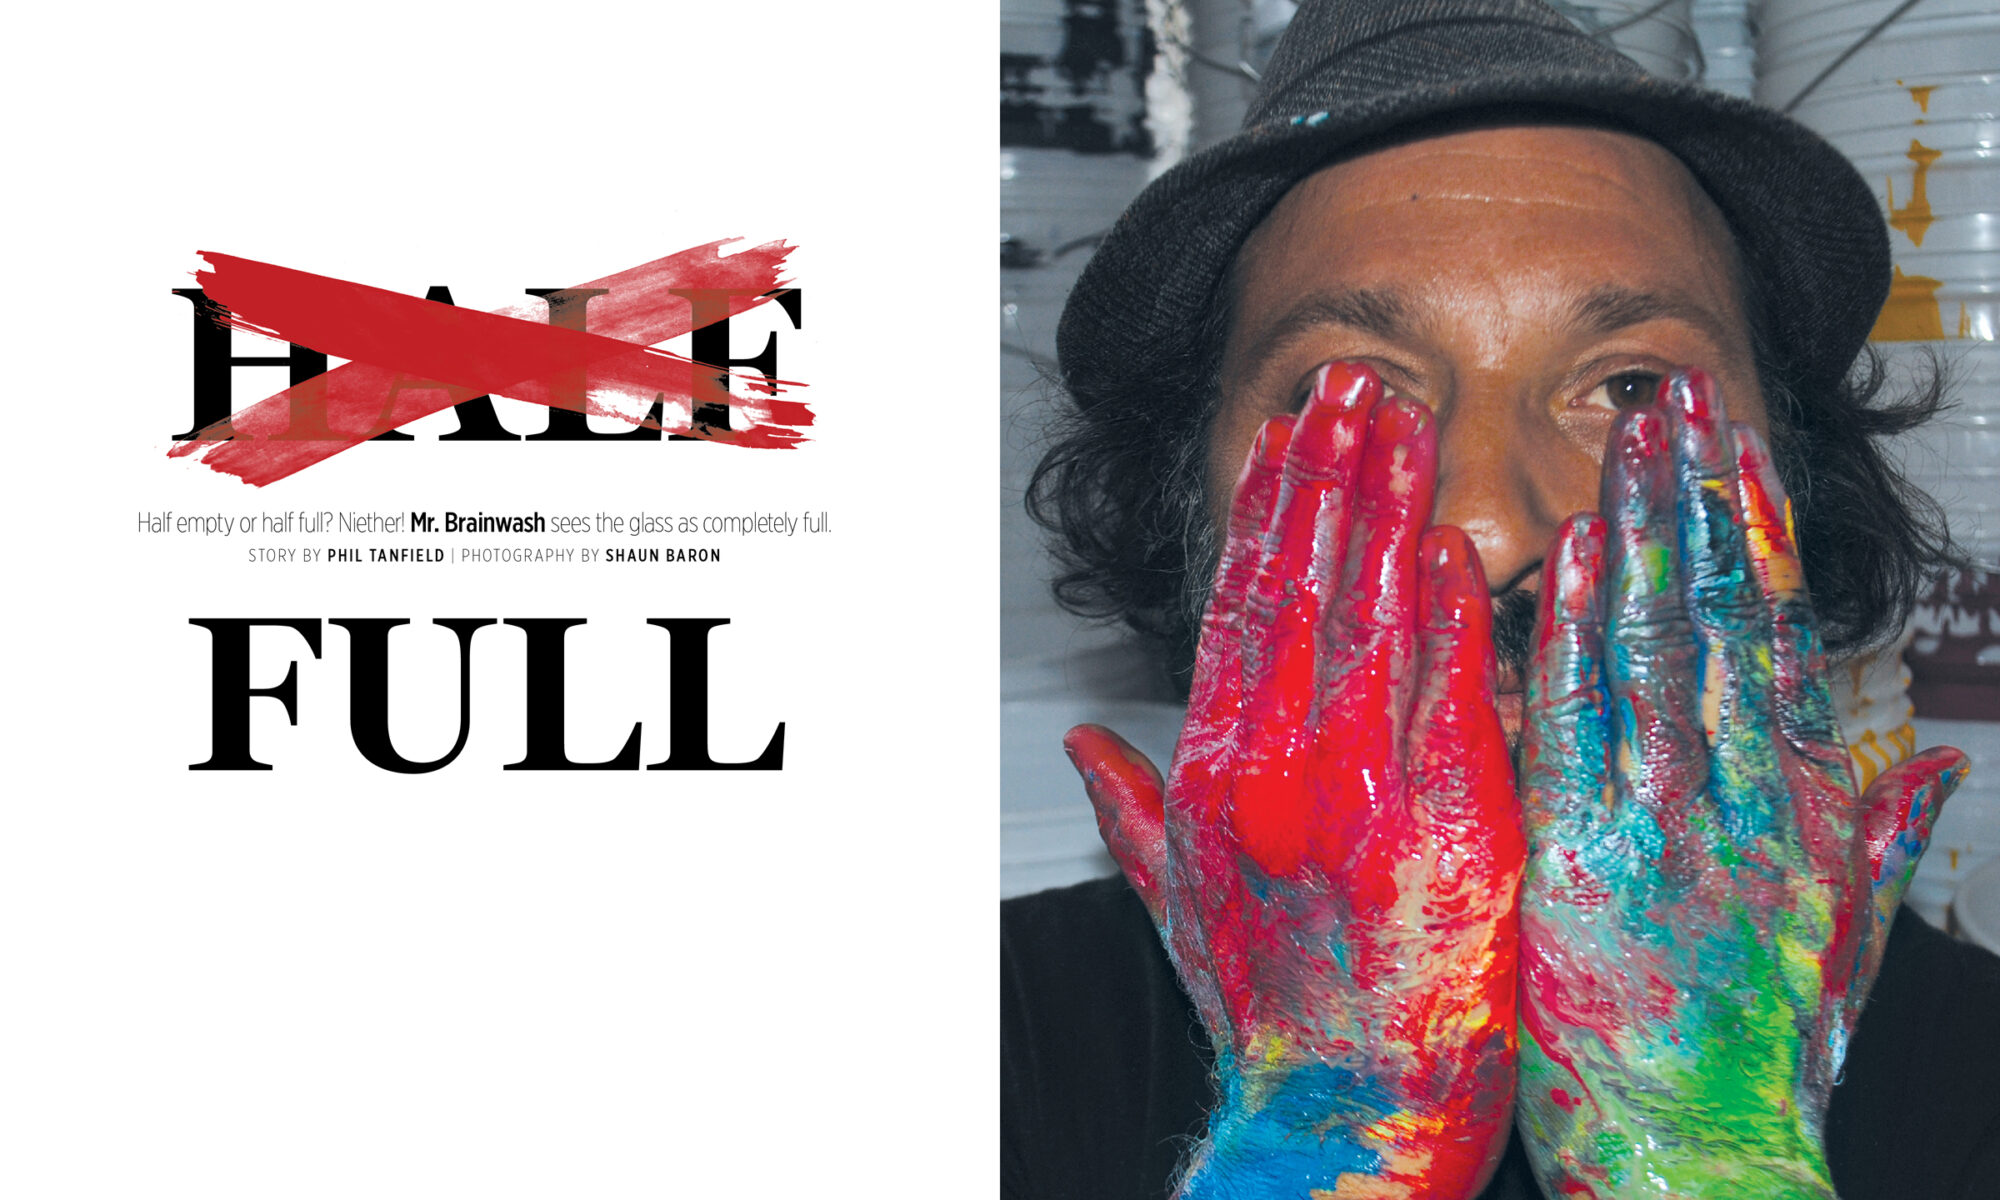 Opening spread of Mr. Brainwash feature, Issue 5, The Infamous magazine, 2011.